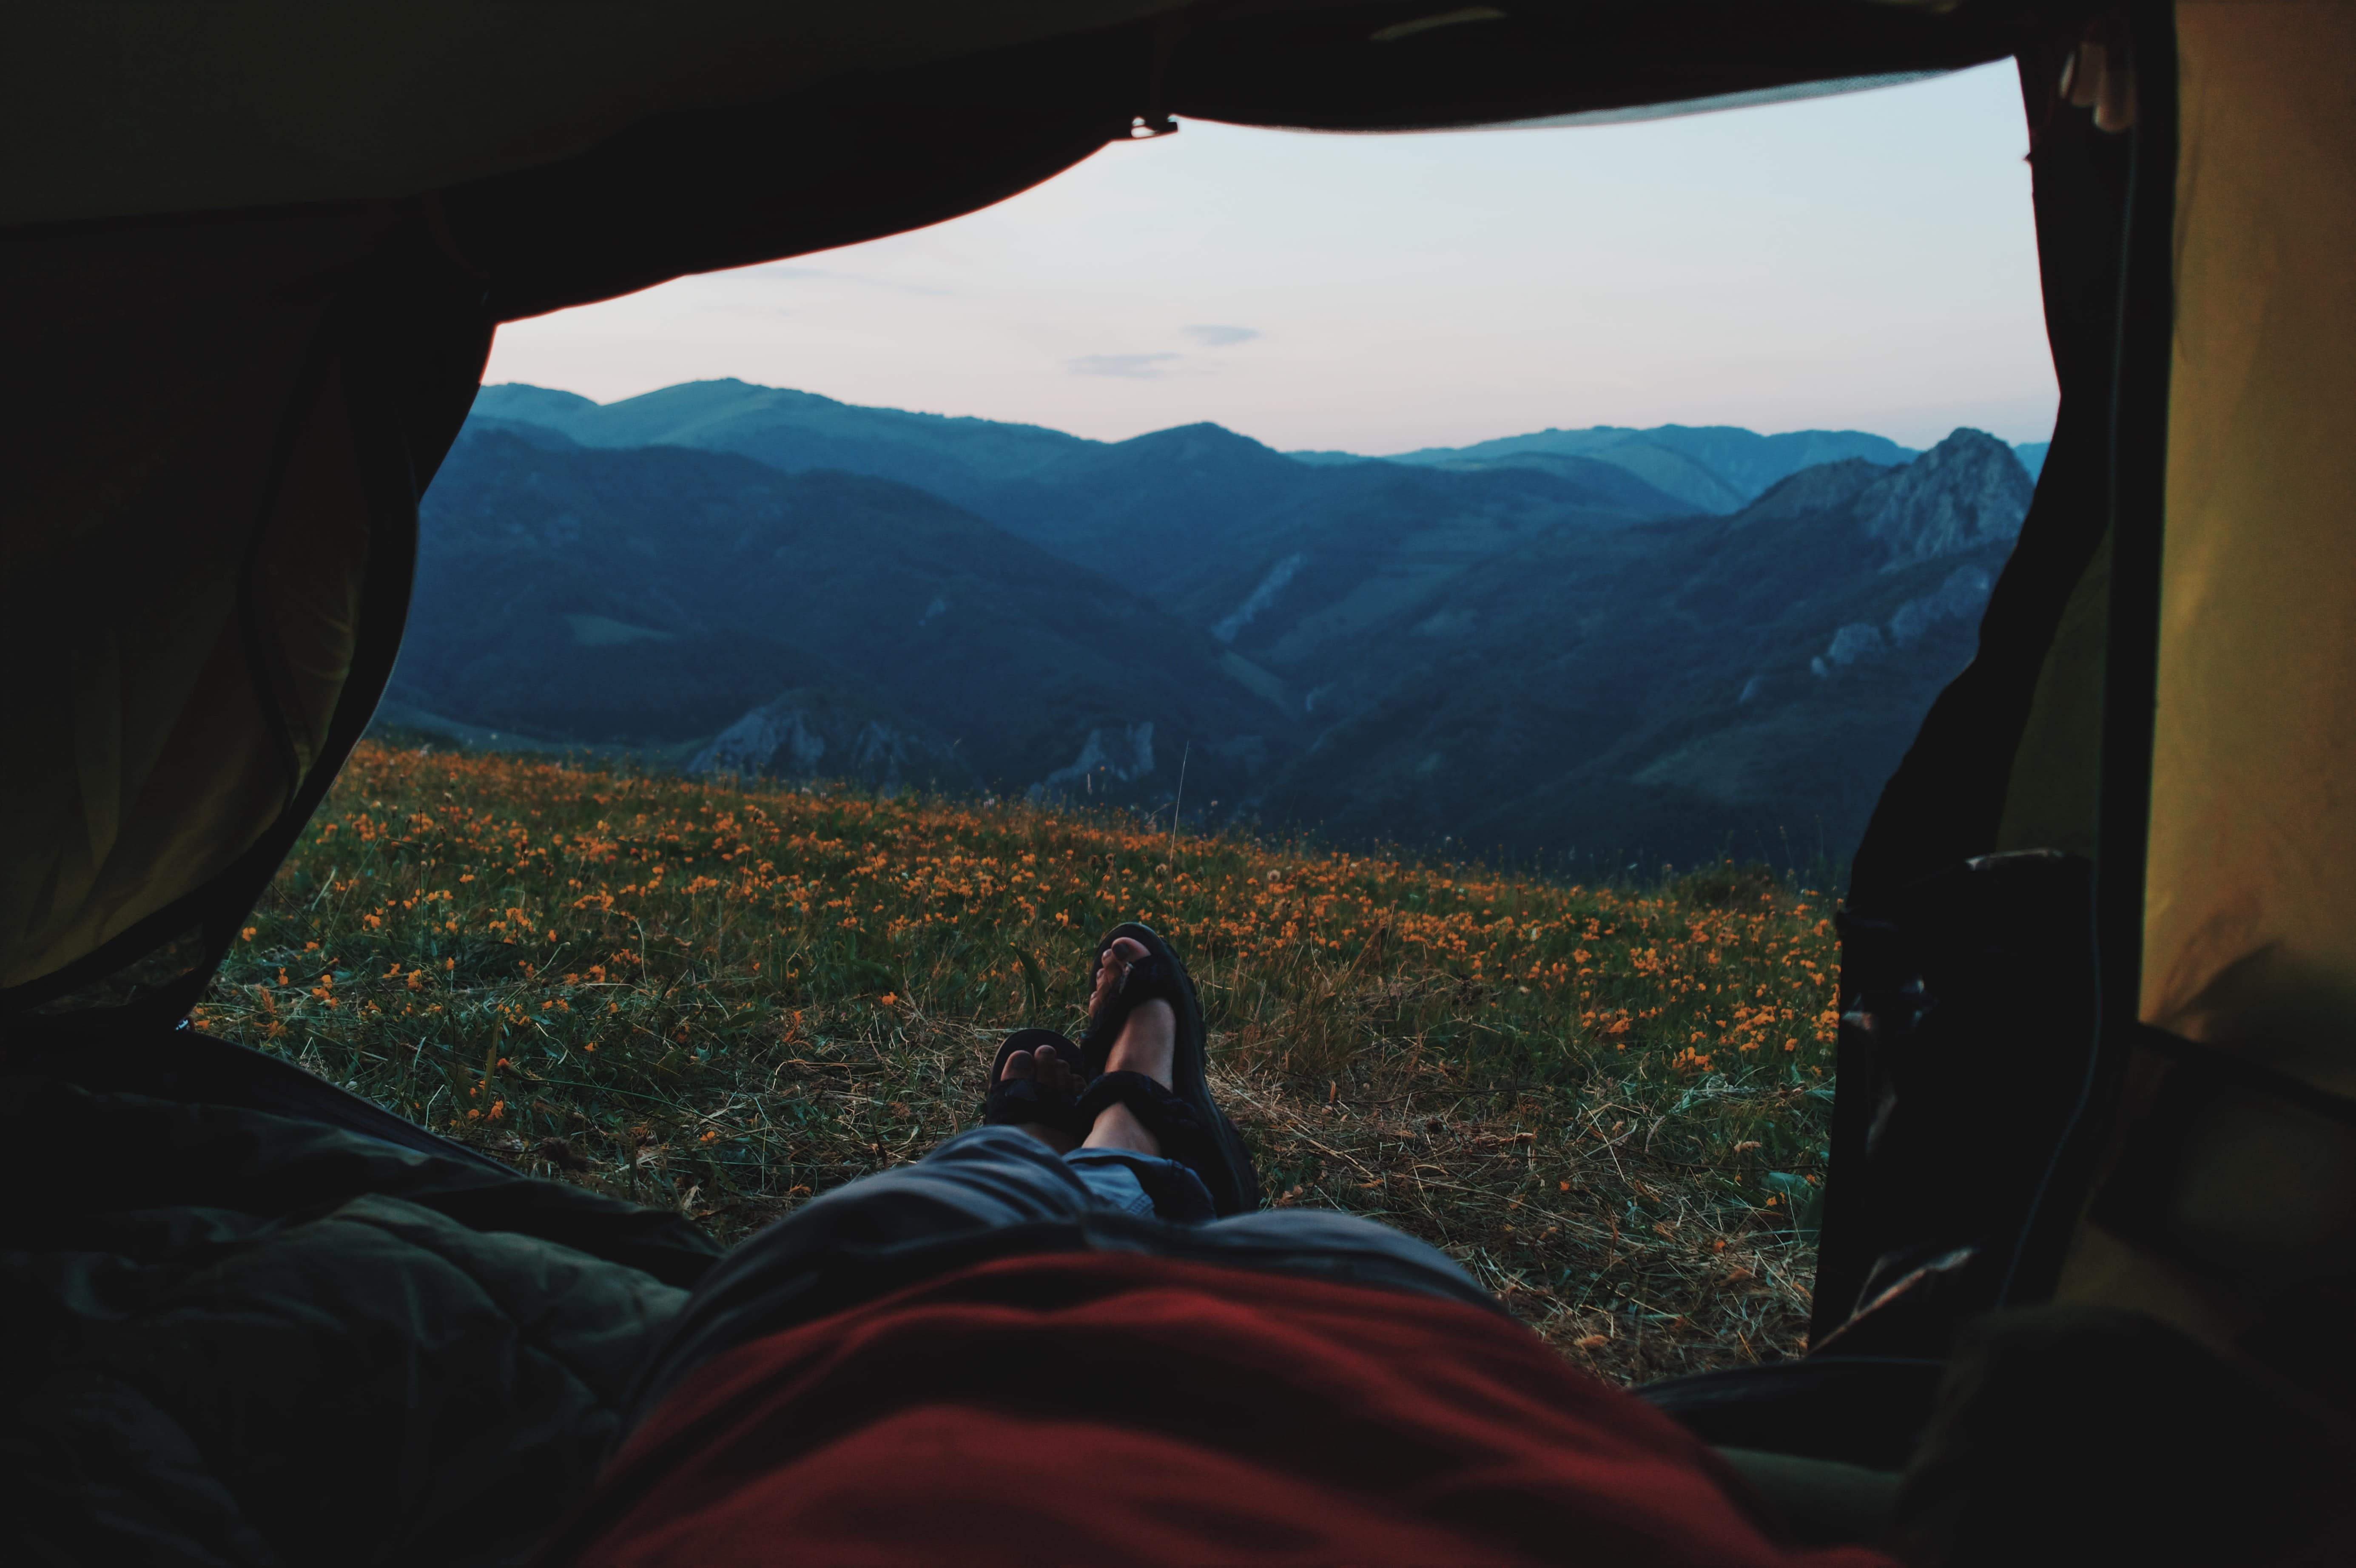 Best Tents for Solo Campers Closing Image - Photo by eulauretta on Unsplash